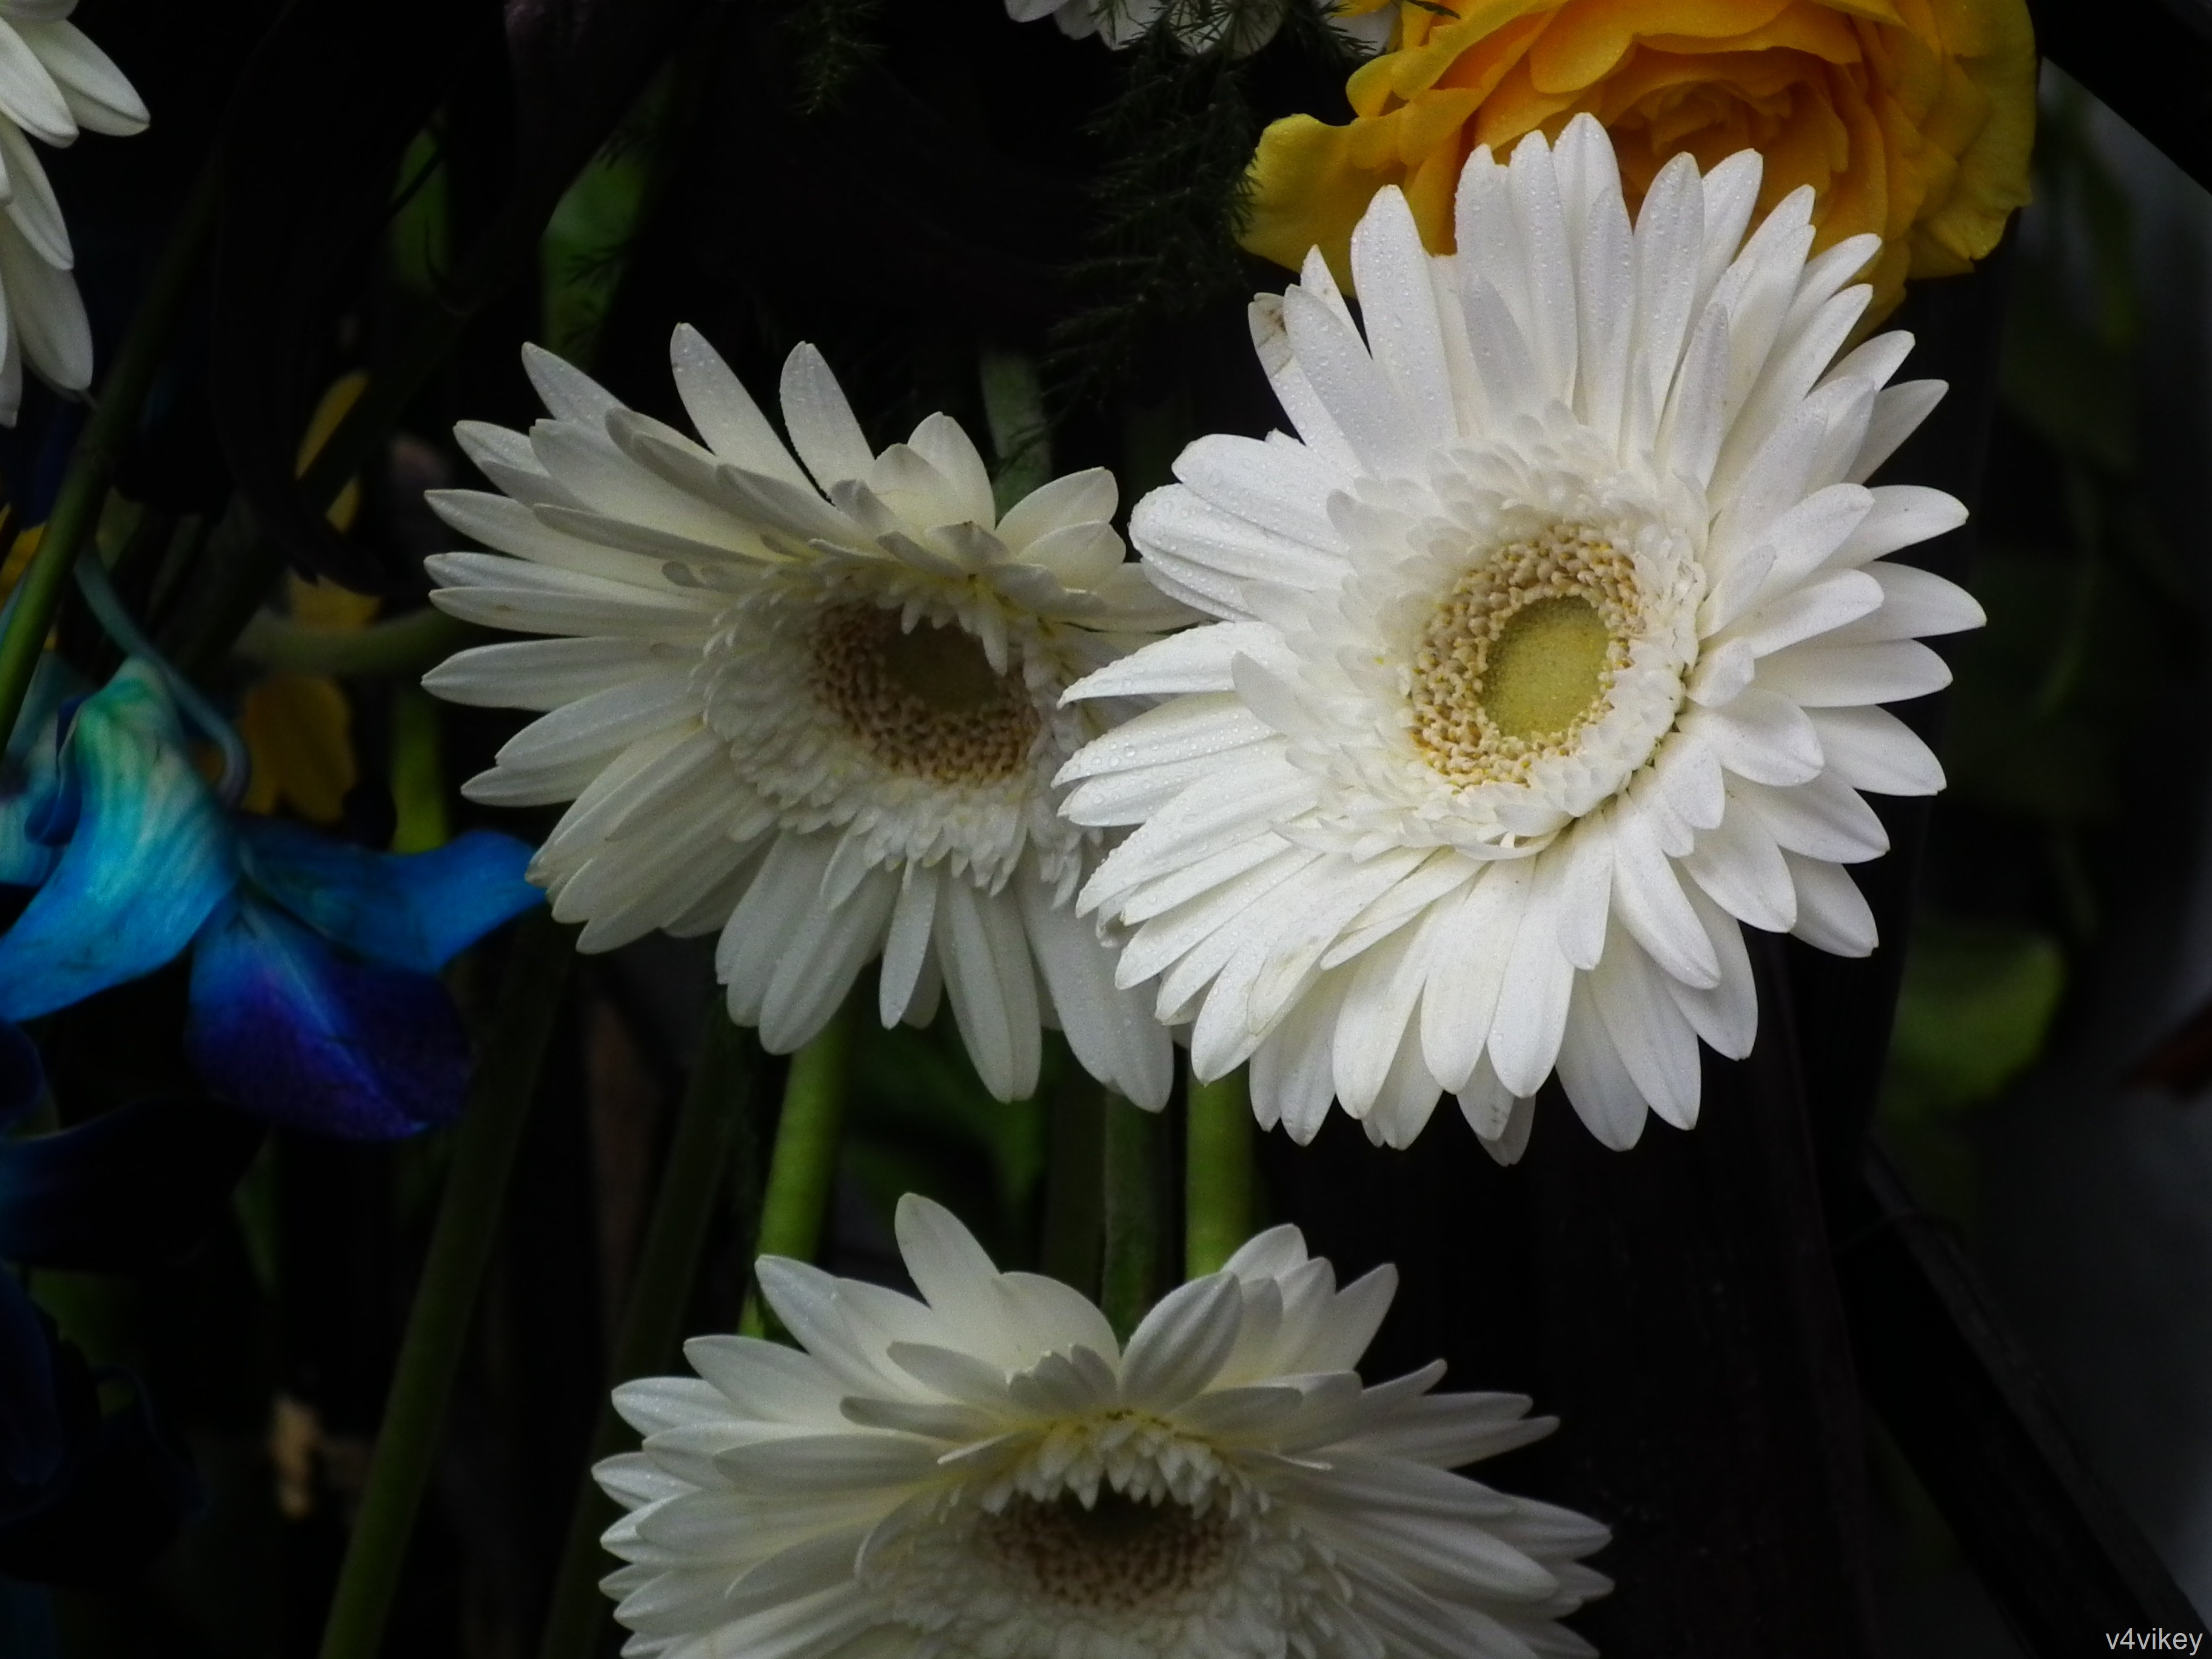 Daisies are simple yet sophisticated wallpaper tadka daisies are simple yet sophisticated izmirmasajfo